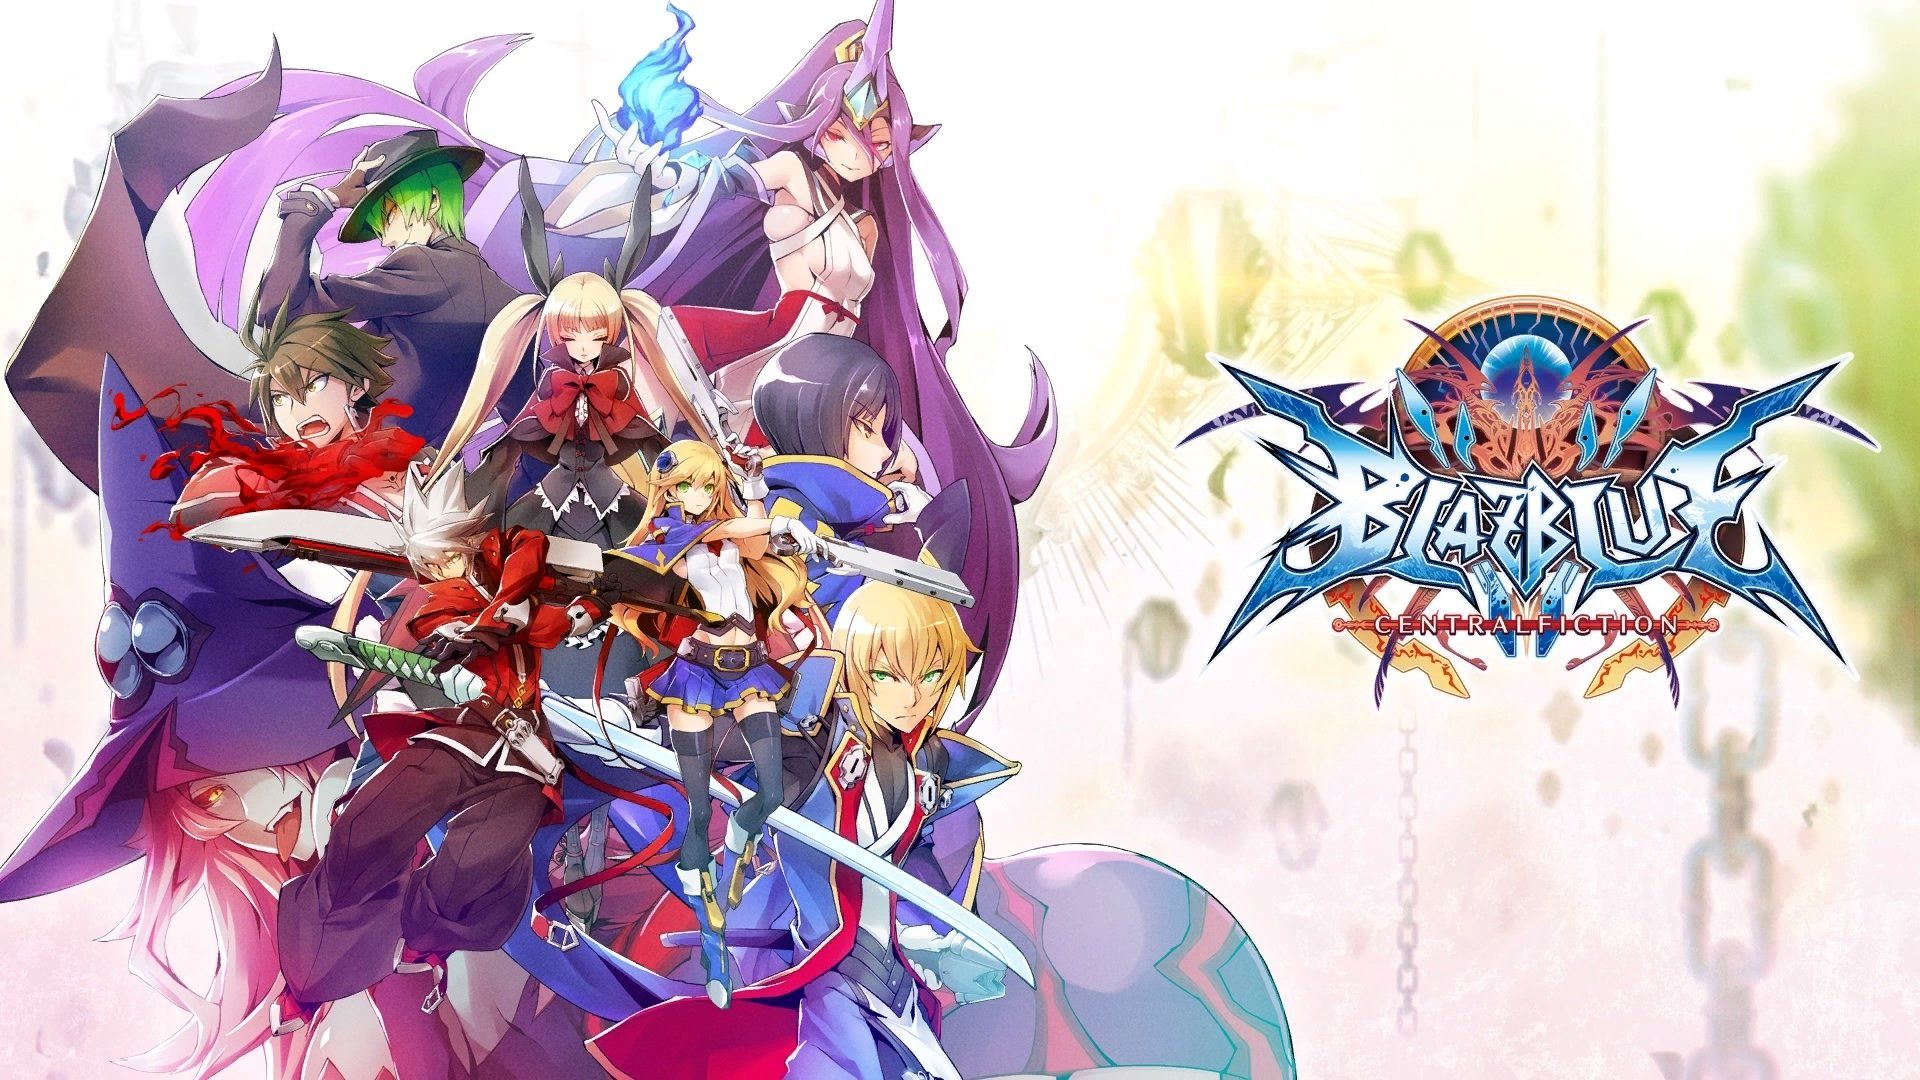 1920x1080 Blazblue Centralfiction Wallpaper Background Image View Download Comment And Rate Wallpaper Abyss Wallpaper Backgrounds Background Images Anime